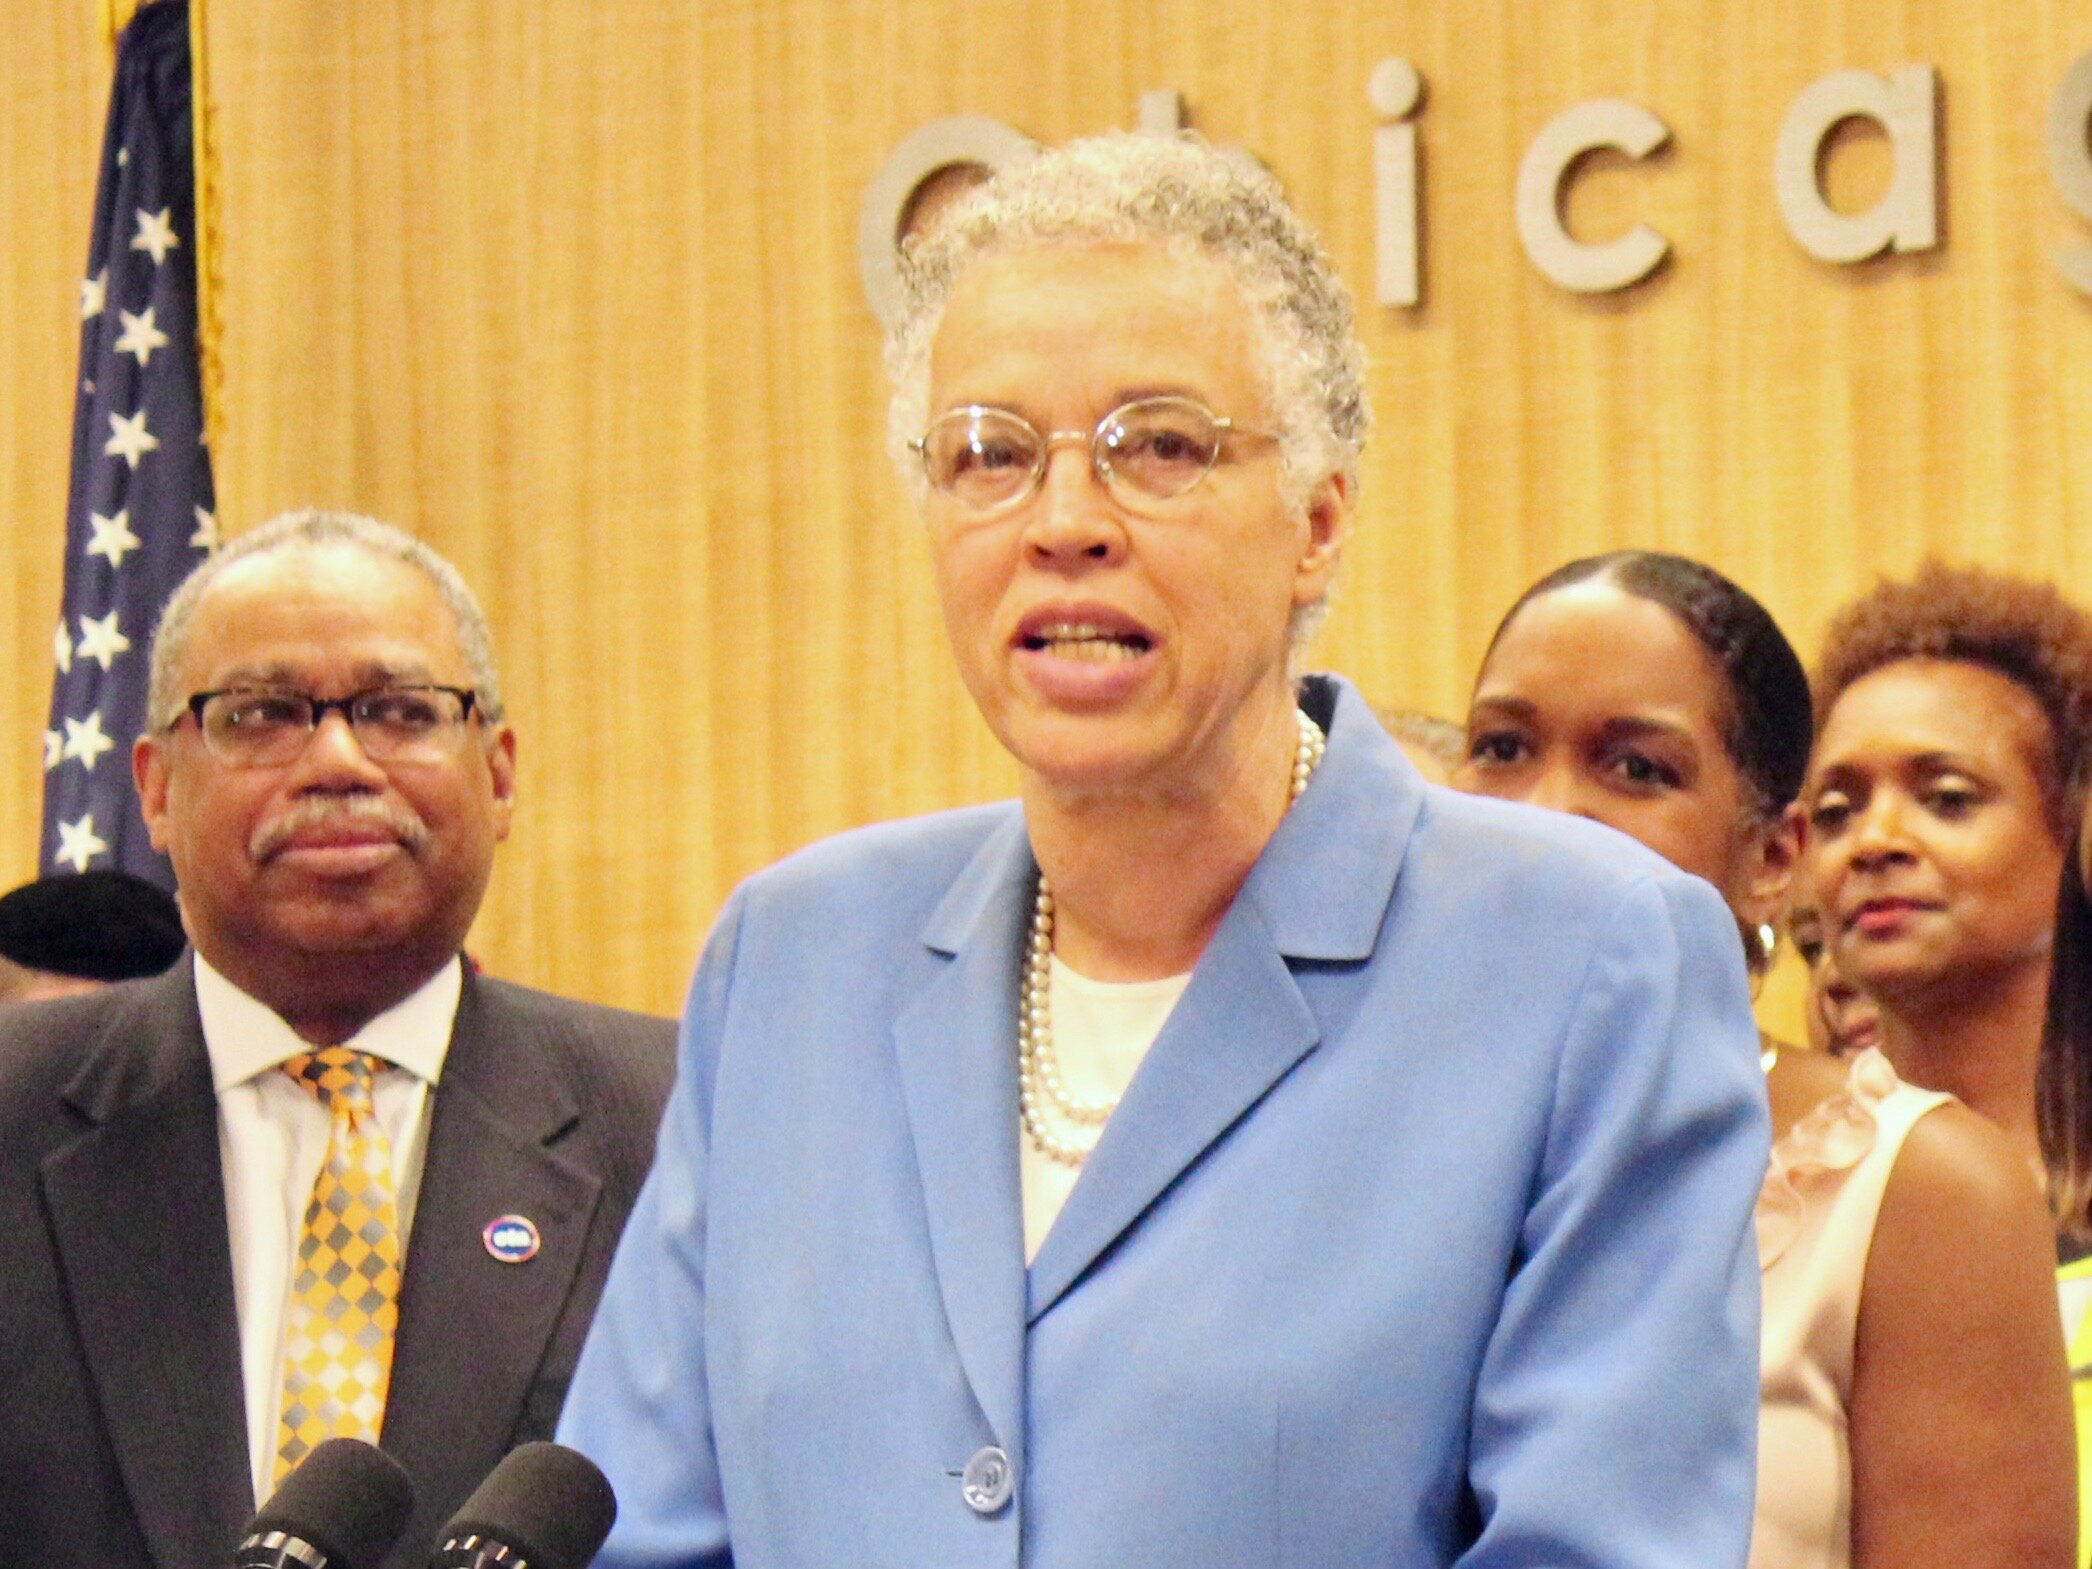 Cook County Board President Toni Preckwinkle defends aspiring immigrants and charges in a lawsuit that discouraging them from using Medicaid would hike health costs. (One Illinois/Ted Cox)